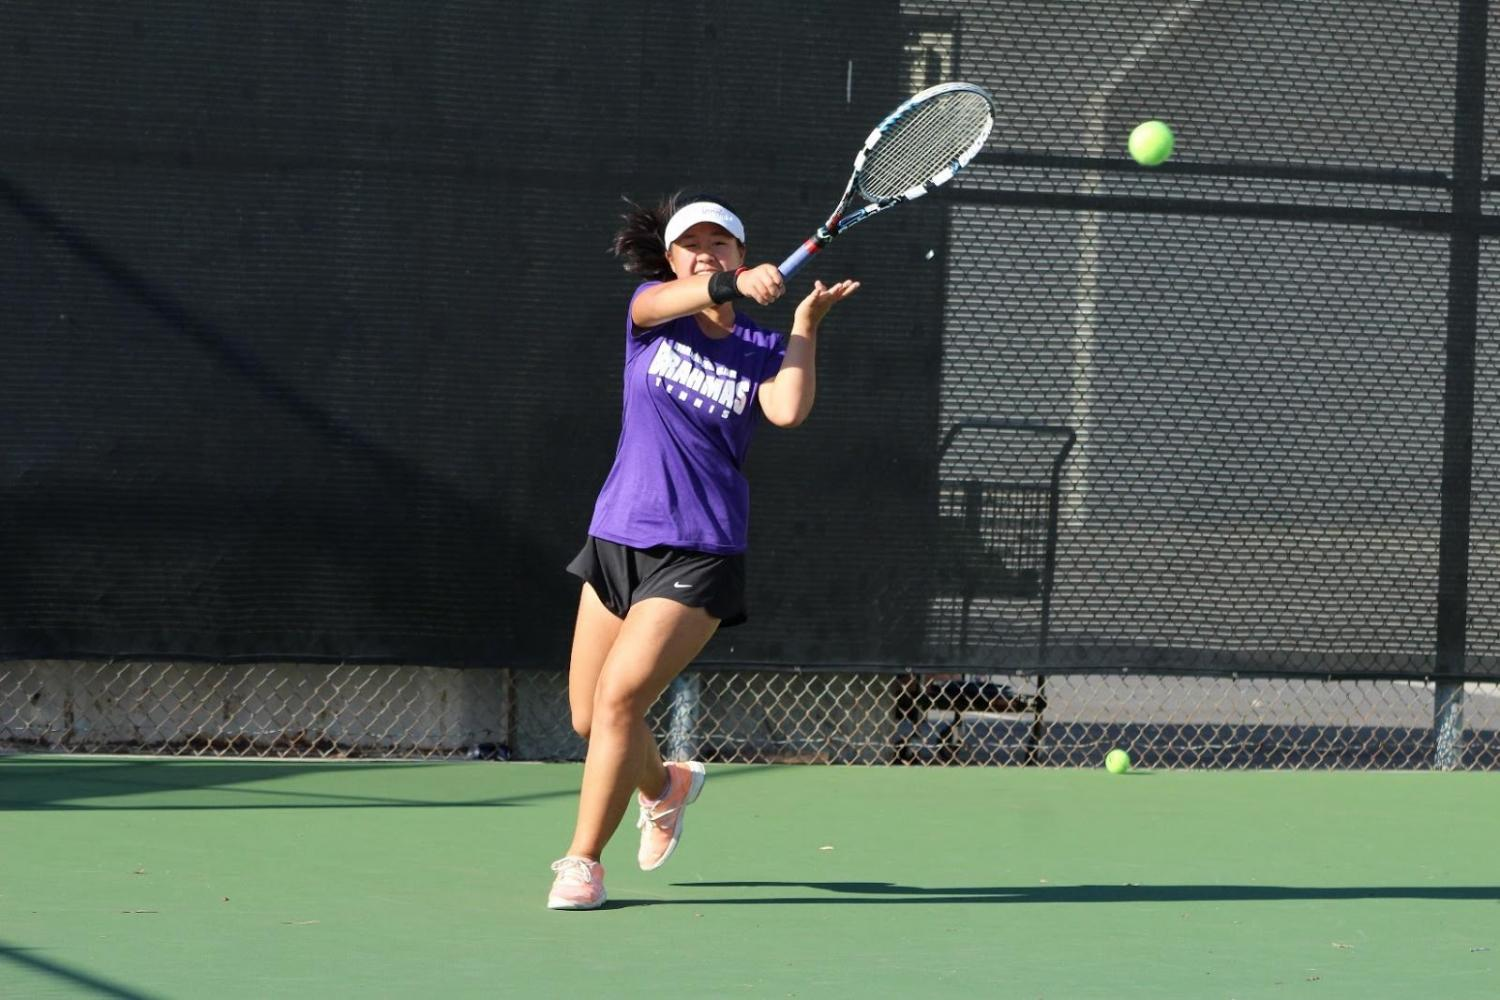 Senior Angeline Cheng has played for both singles and doubles for the team.